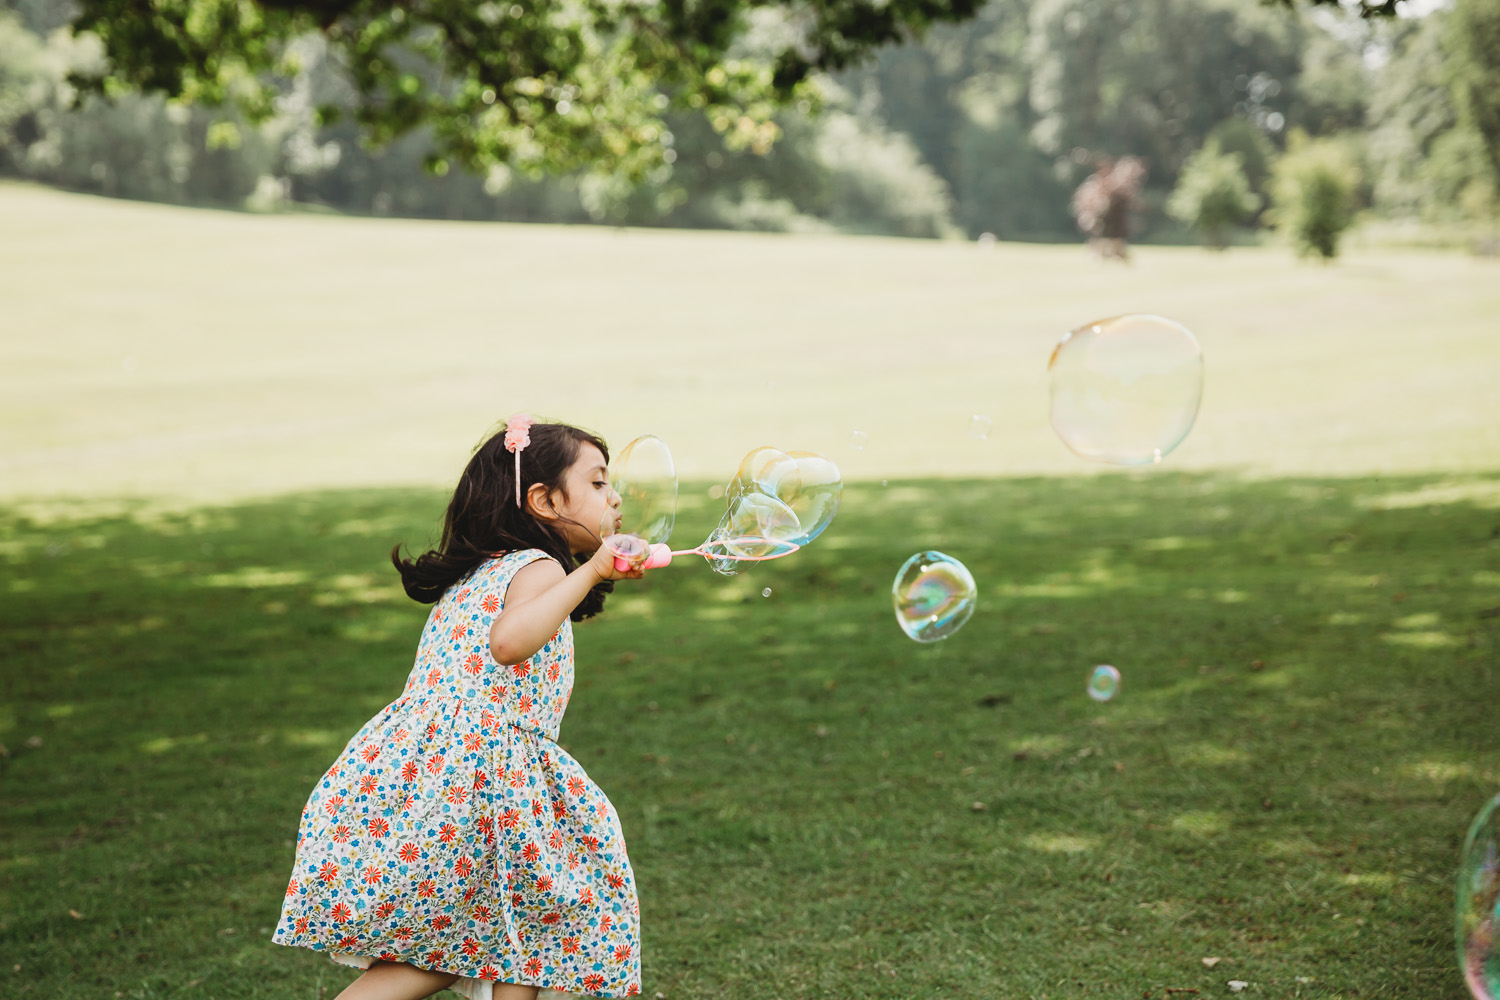 Girl of four blows bubbles in the park